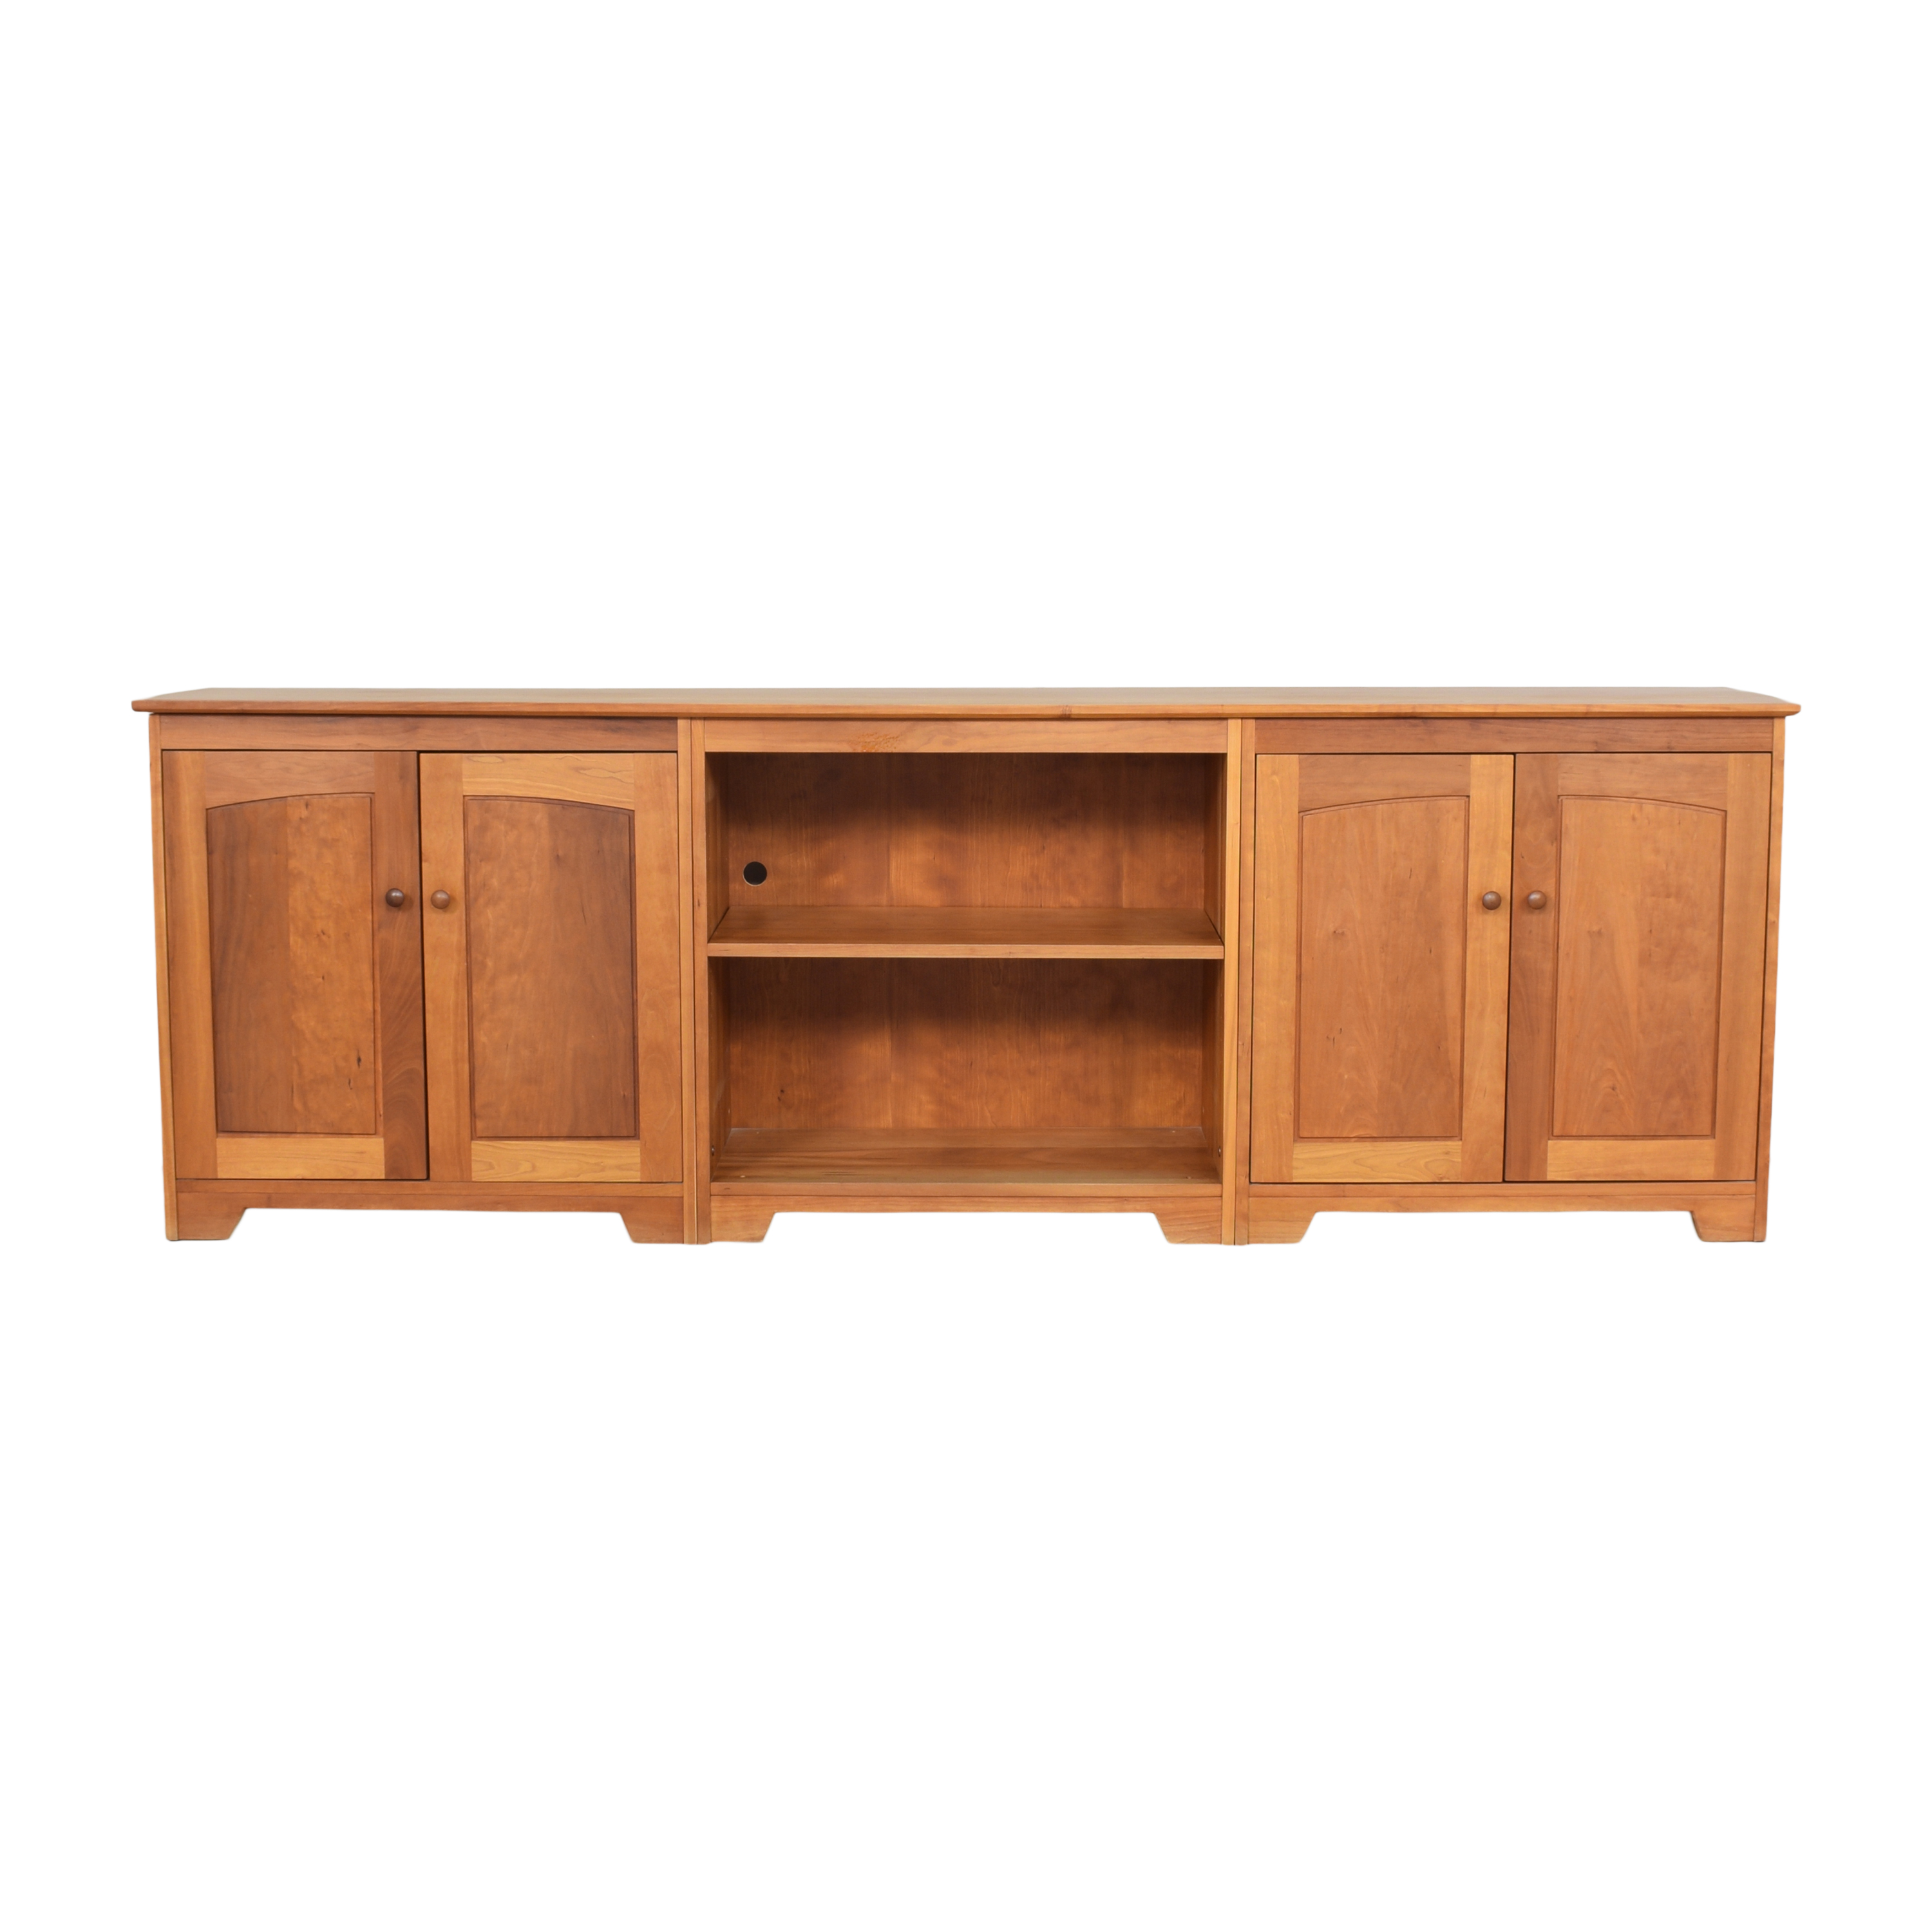 Scott Jordan Furniture Scott Jordan Furniture Three Piece Entertainment Console used